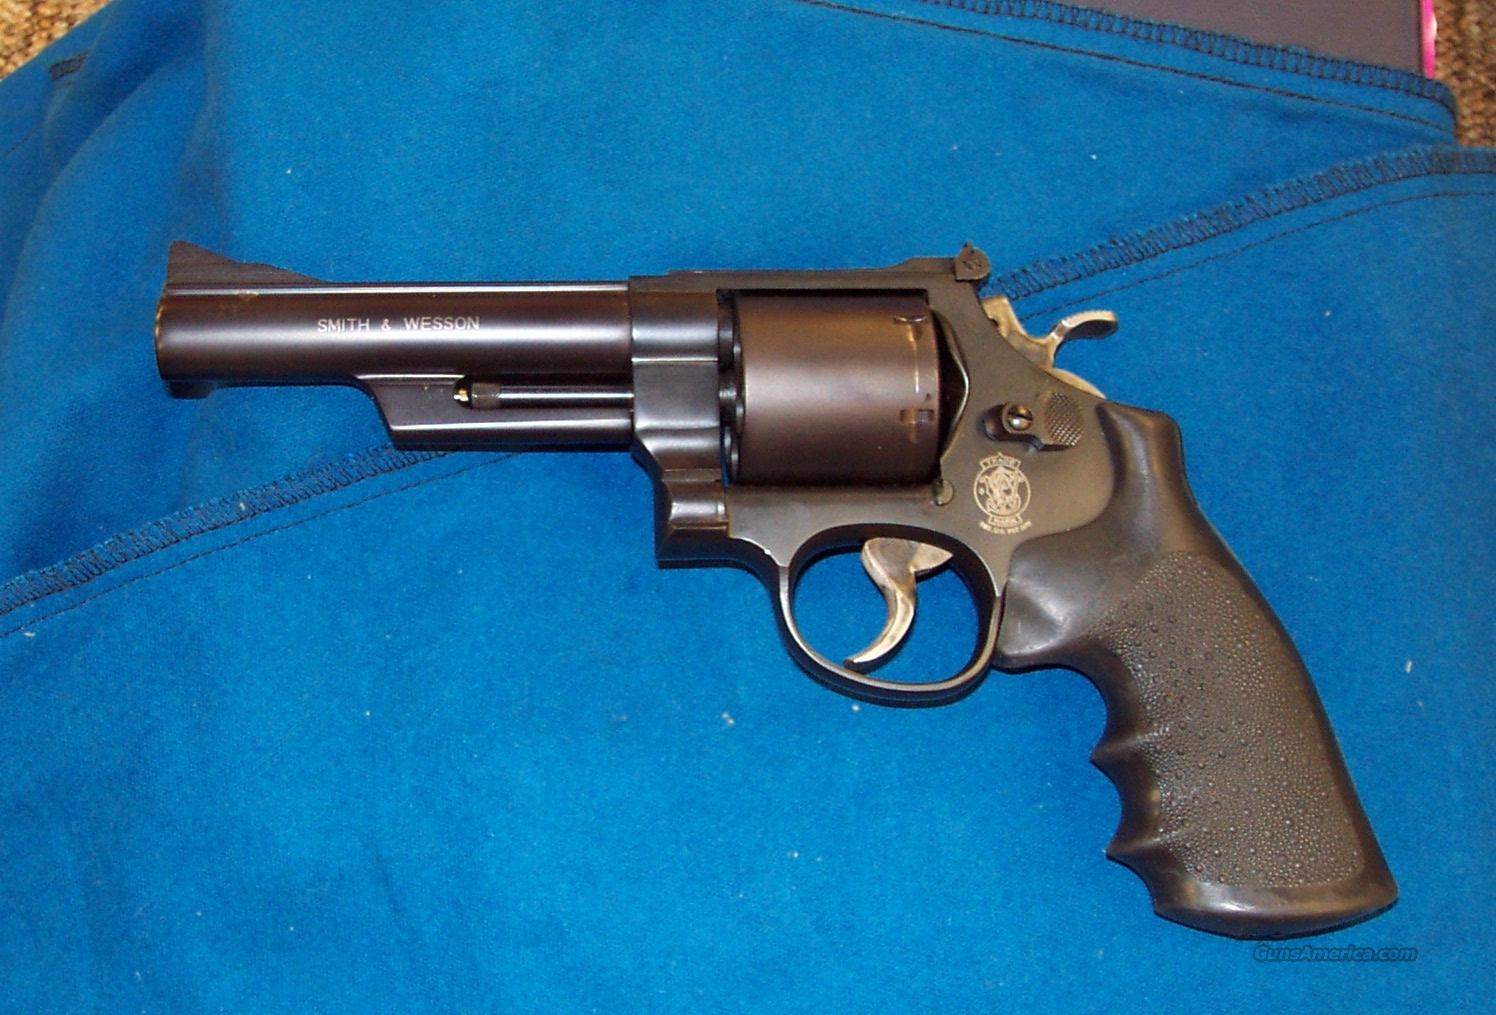 Smith & Wesson 25-7  Guns > Pistols > Smith & Wesson Revolvers > Full Frame Revolver